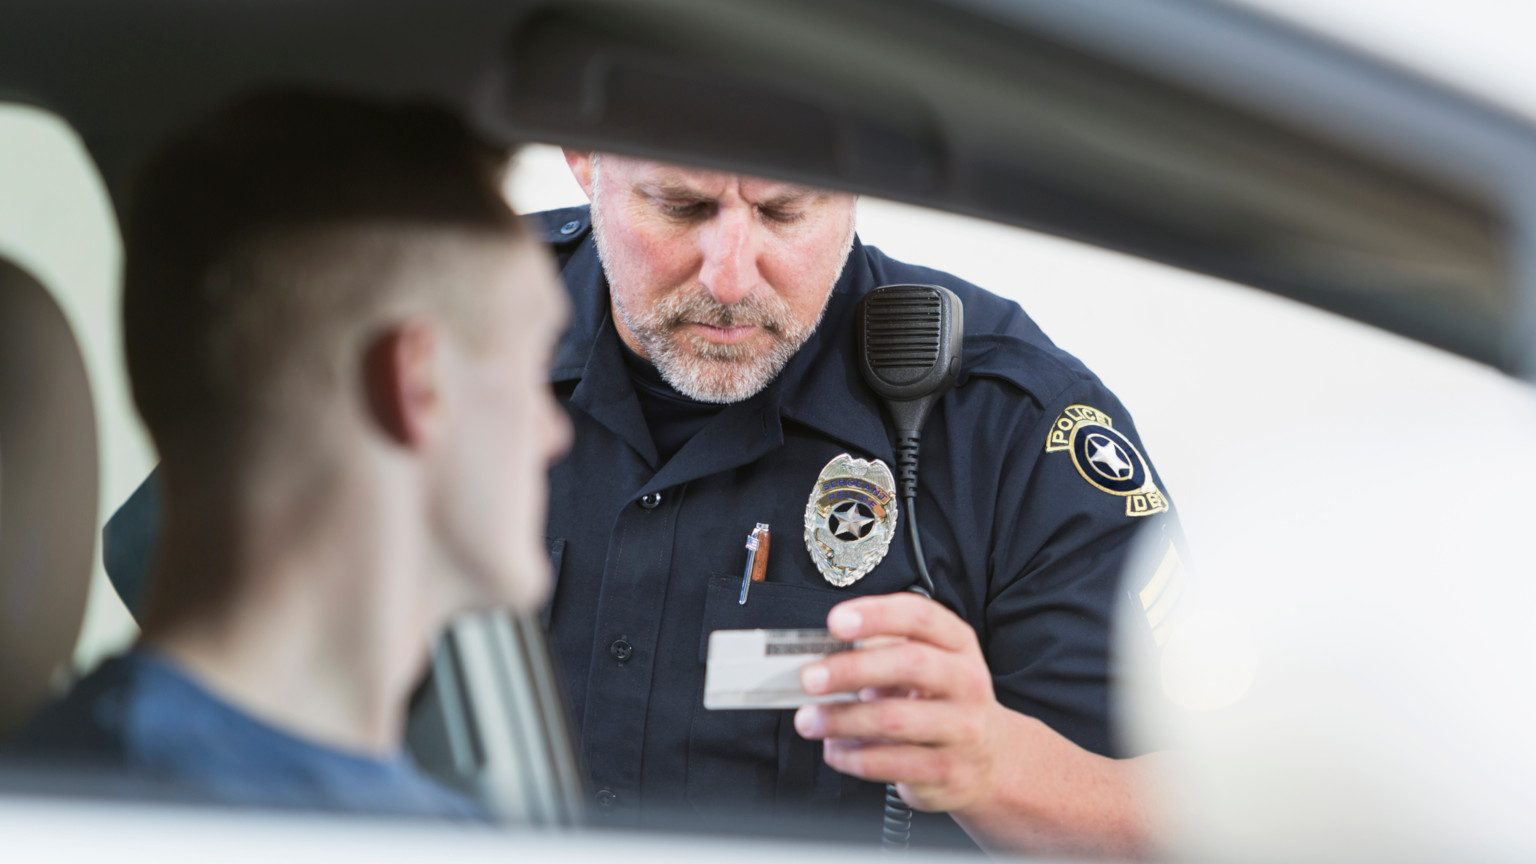 Cop looking at a man's drivers license through open car window